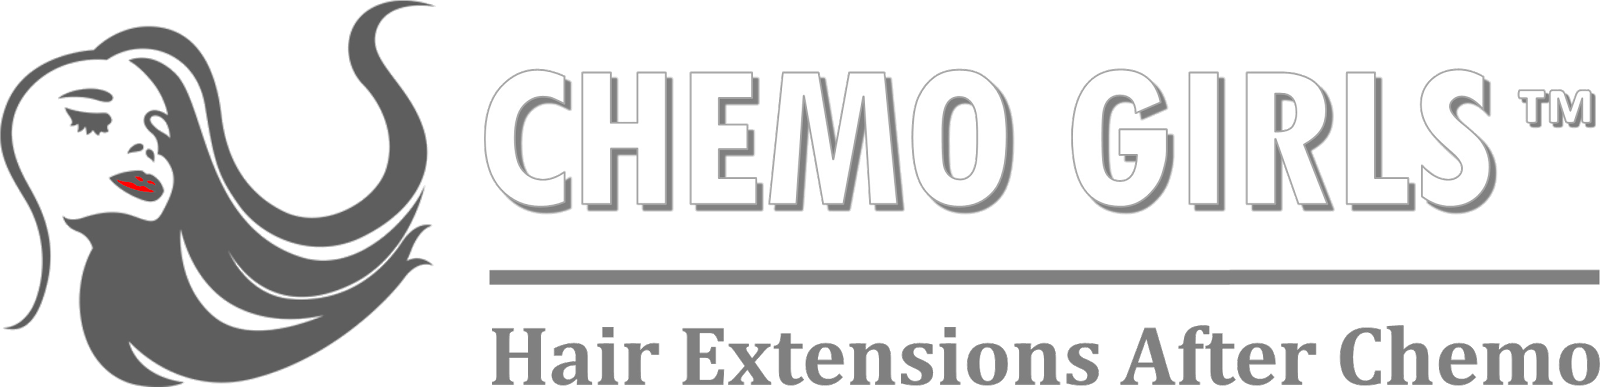 Jon richards salon hair extensions after chemo hair extensions jon richards salon now offers chemo girls hair extensions for cancer patients he has been able to help women from all over the world with them pmusecretfo Images